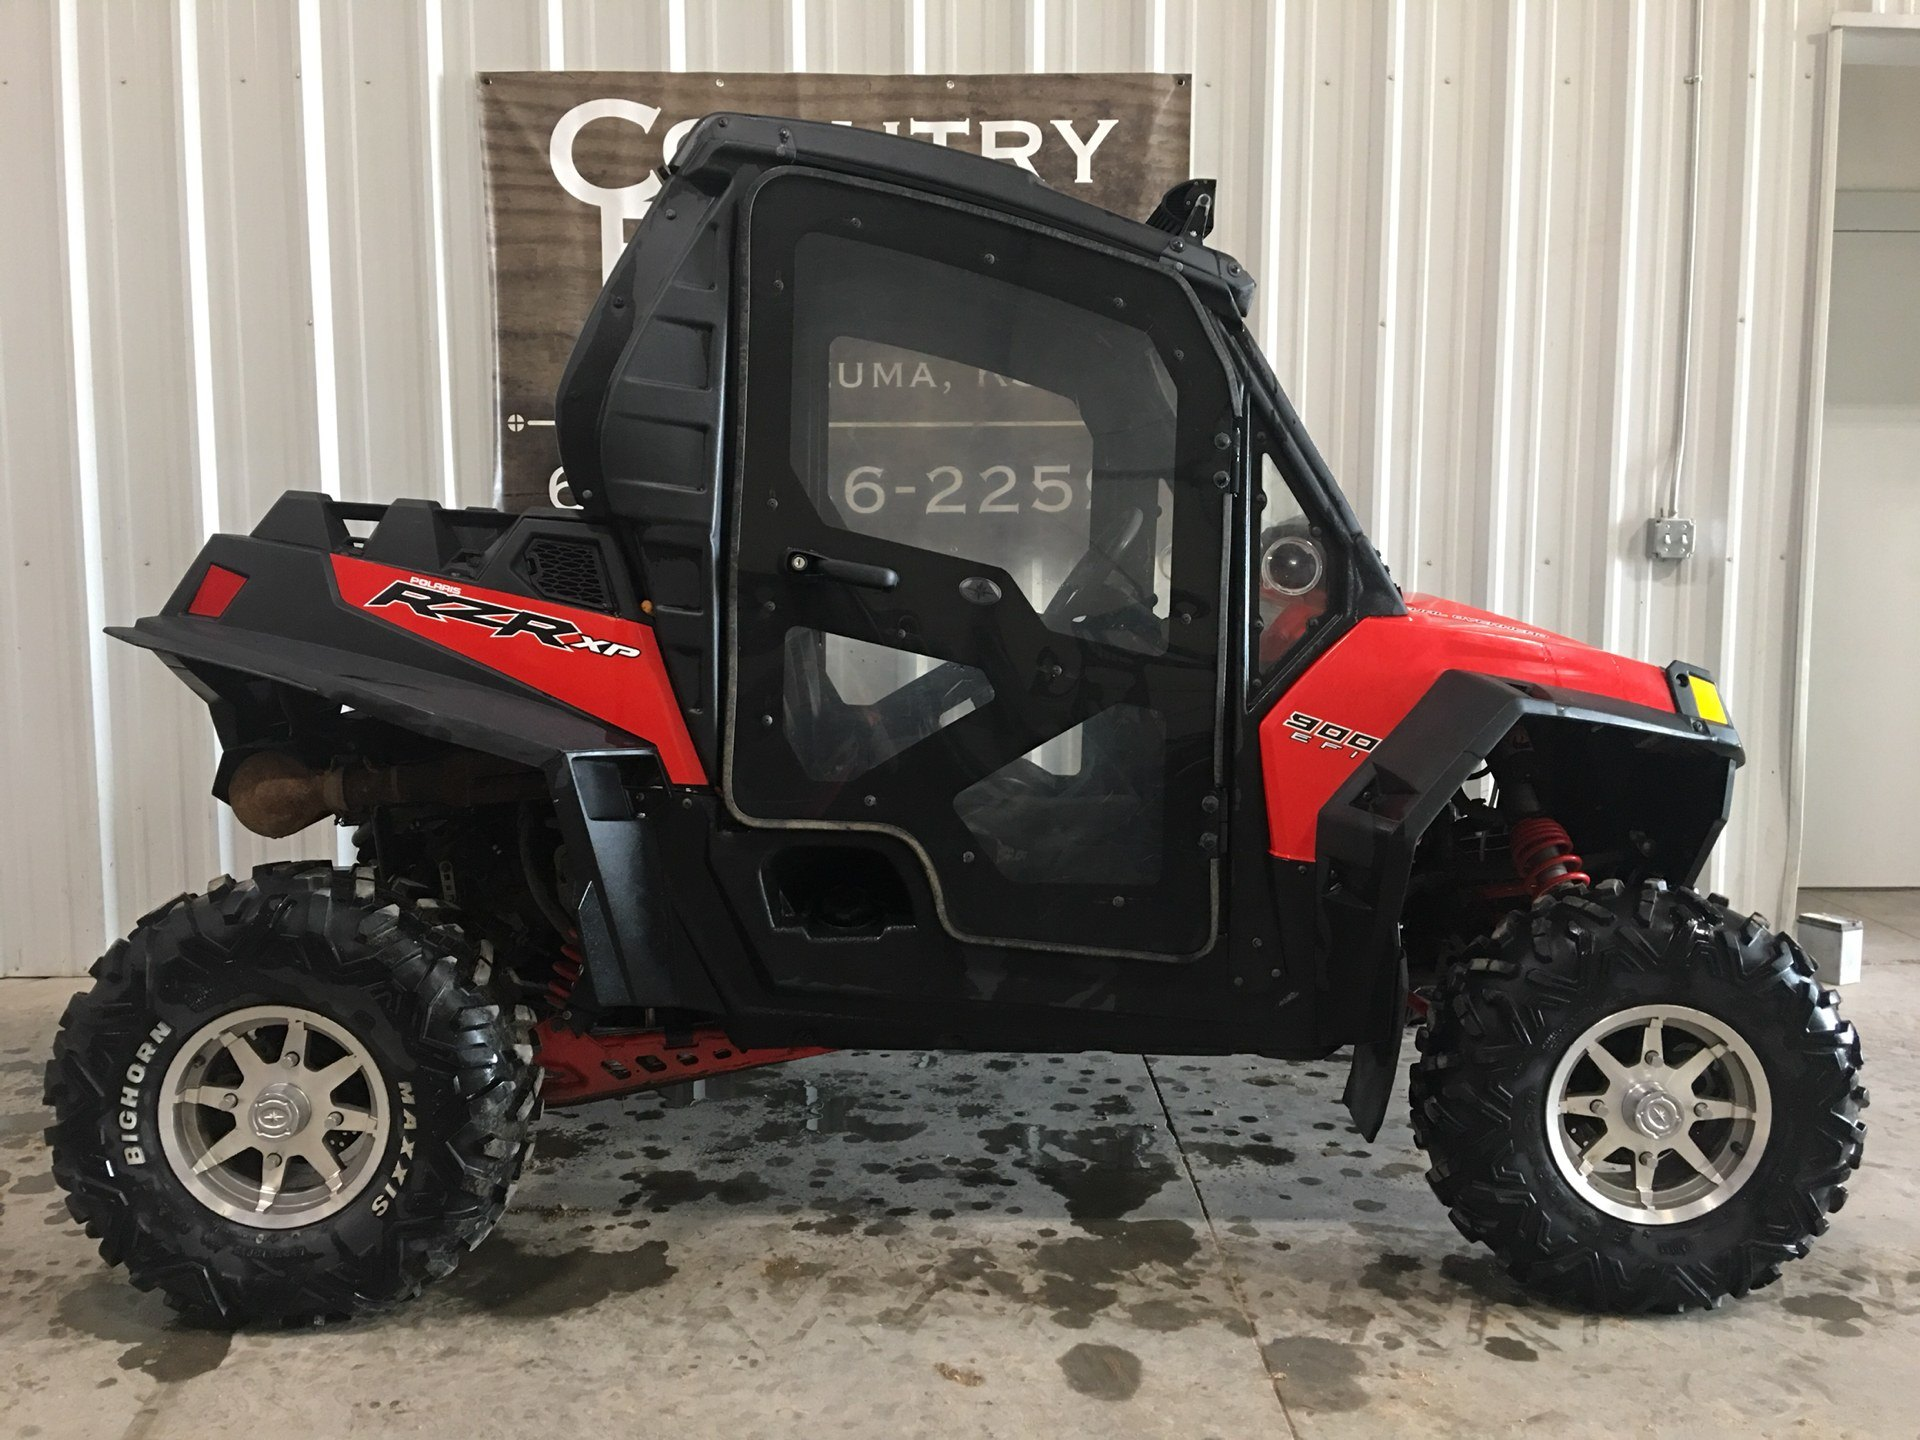 2013 Polaris RZR® XP 900 EFI in Montezuma, Kansas - Photo 16